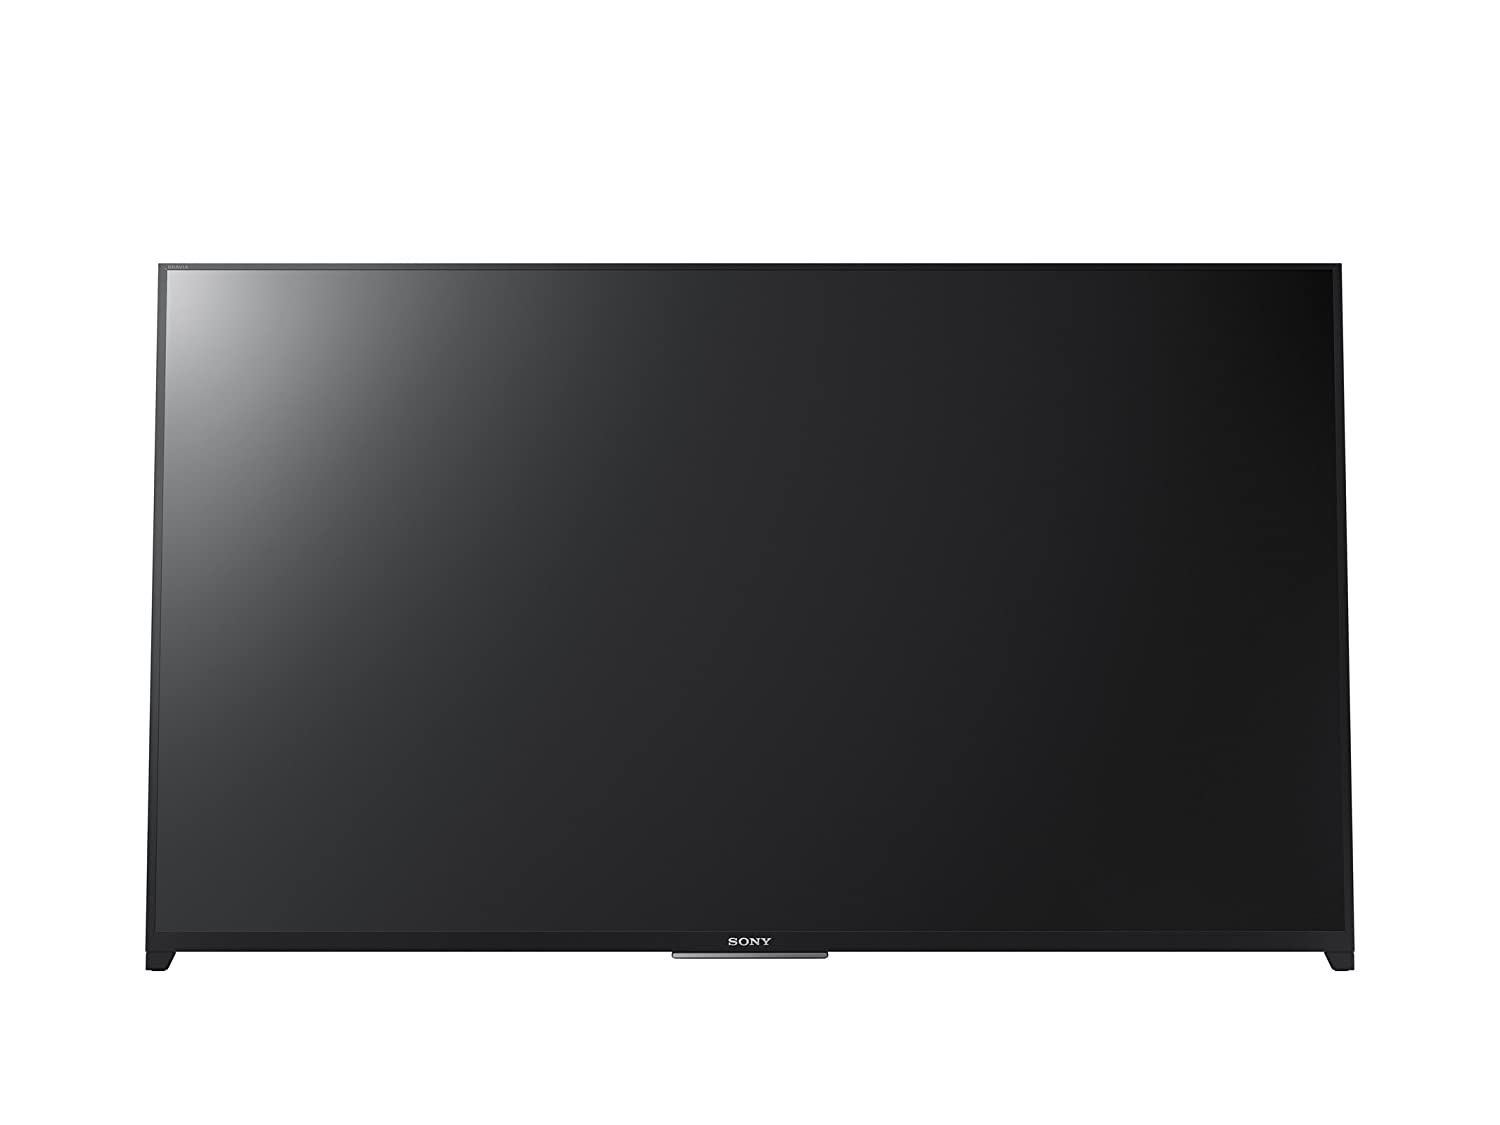 Sony Bravia KDL-43W950D 108cm (43 inches) Full HD 3D Android LED TV